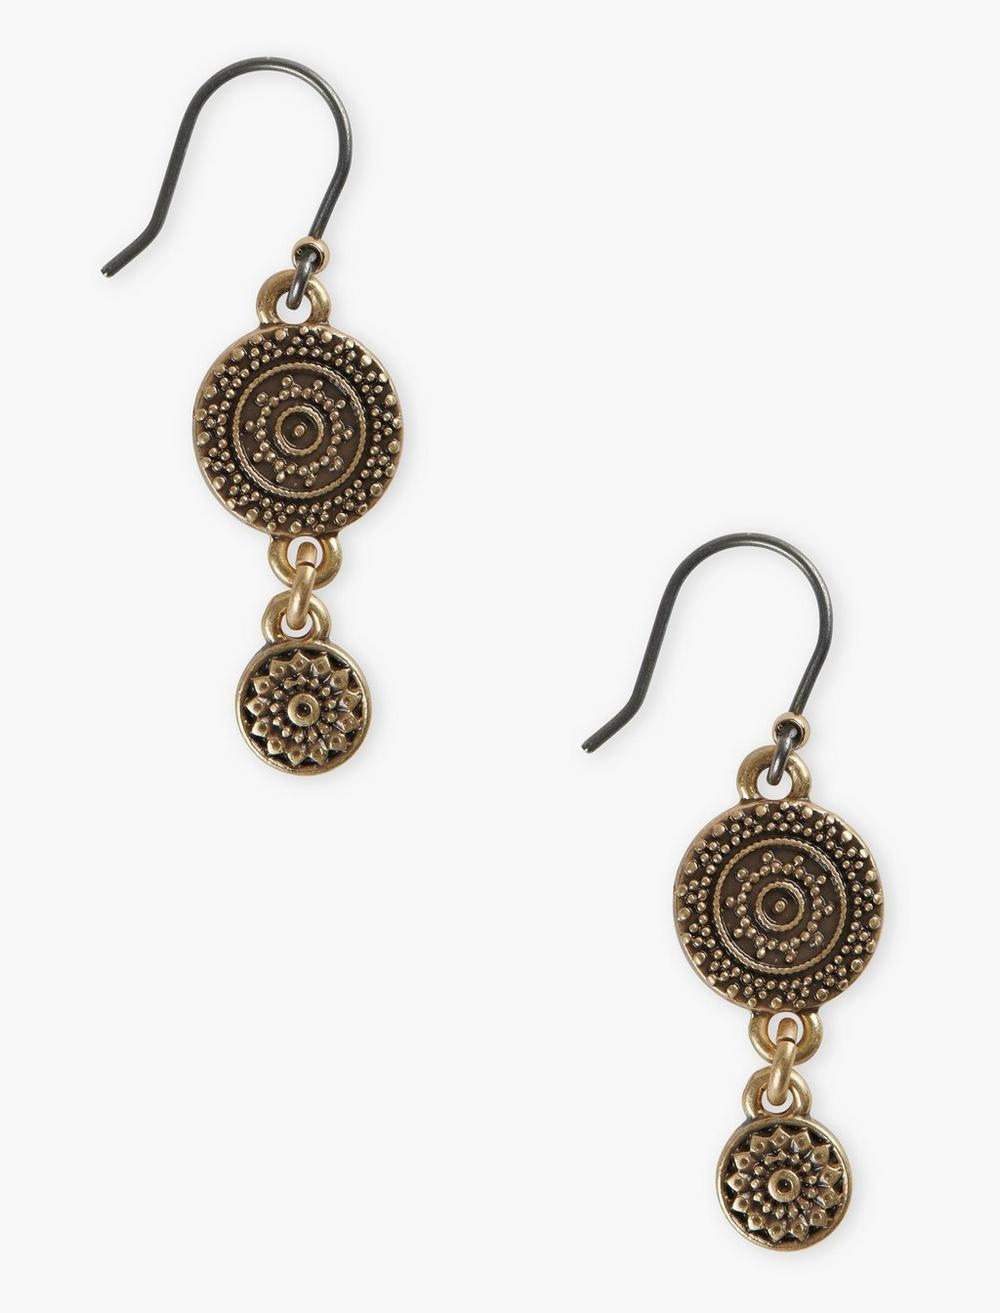 ETCHED DROP EARRINGS, image 1